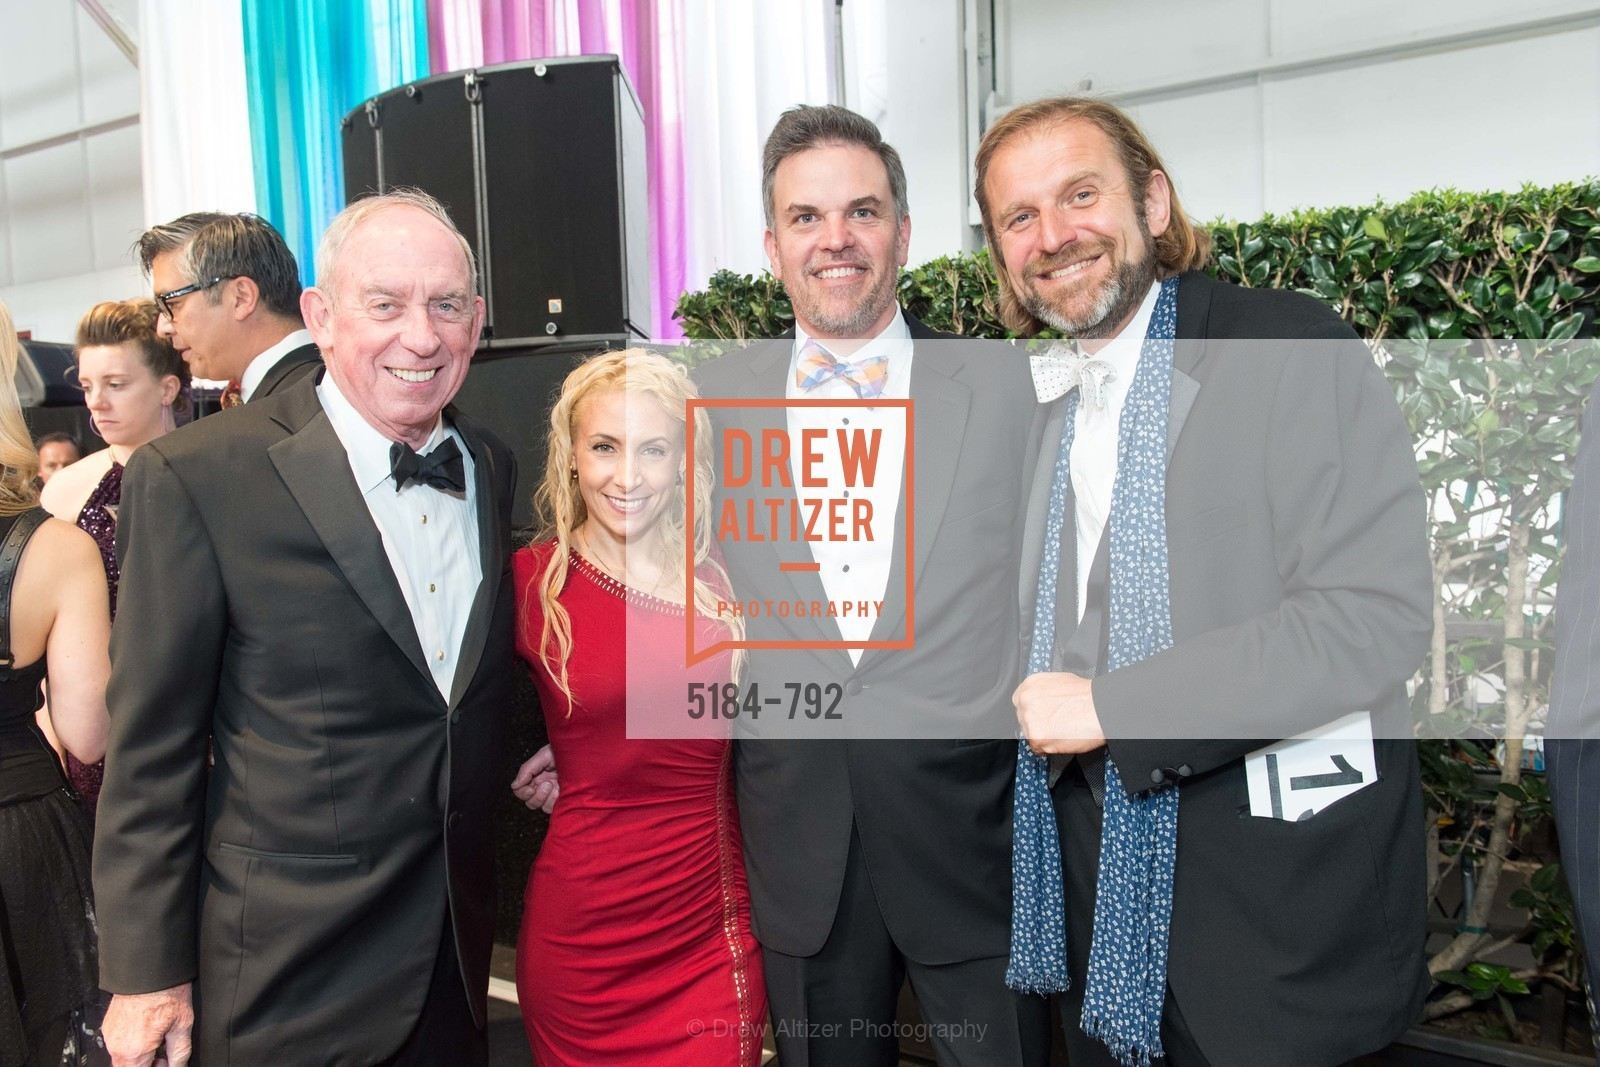 Craig Sullivan, Robin Farmanfarmaian, Paul Anderson, Ian Sobieski, MEALS ON WHEELS OF SAN FRANCISCO'S 28th Annual Star Chefs and Vintners Gala, US, April 19th, 2015,Drew Altizer, Drew Altizer Photography, full-service agency, private events, San Francisco photographer, photographer california